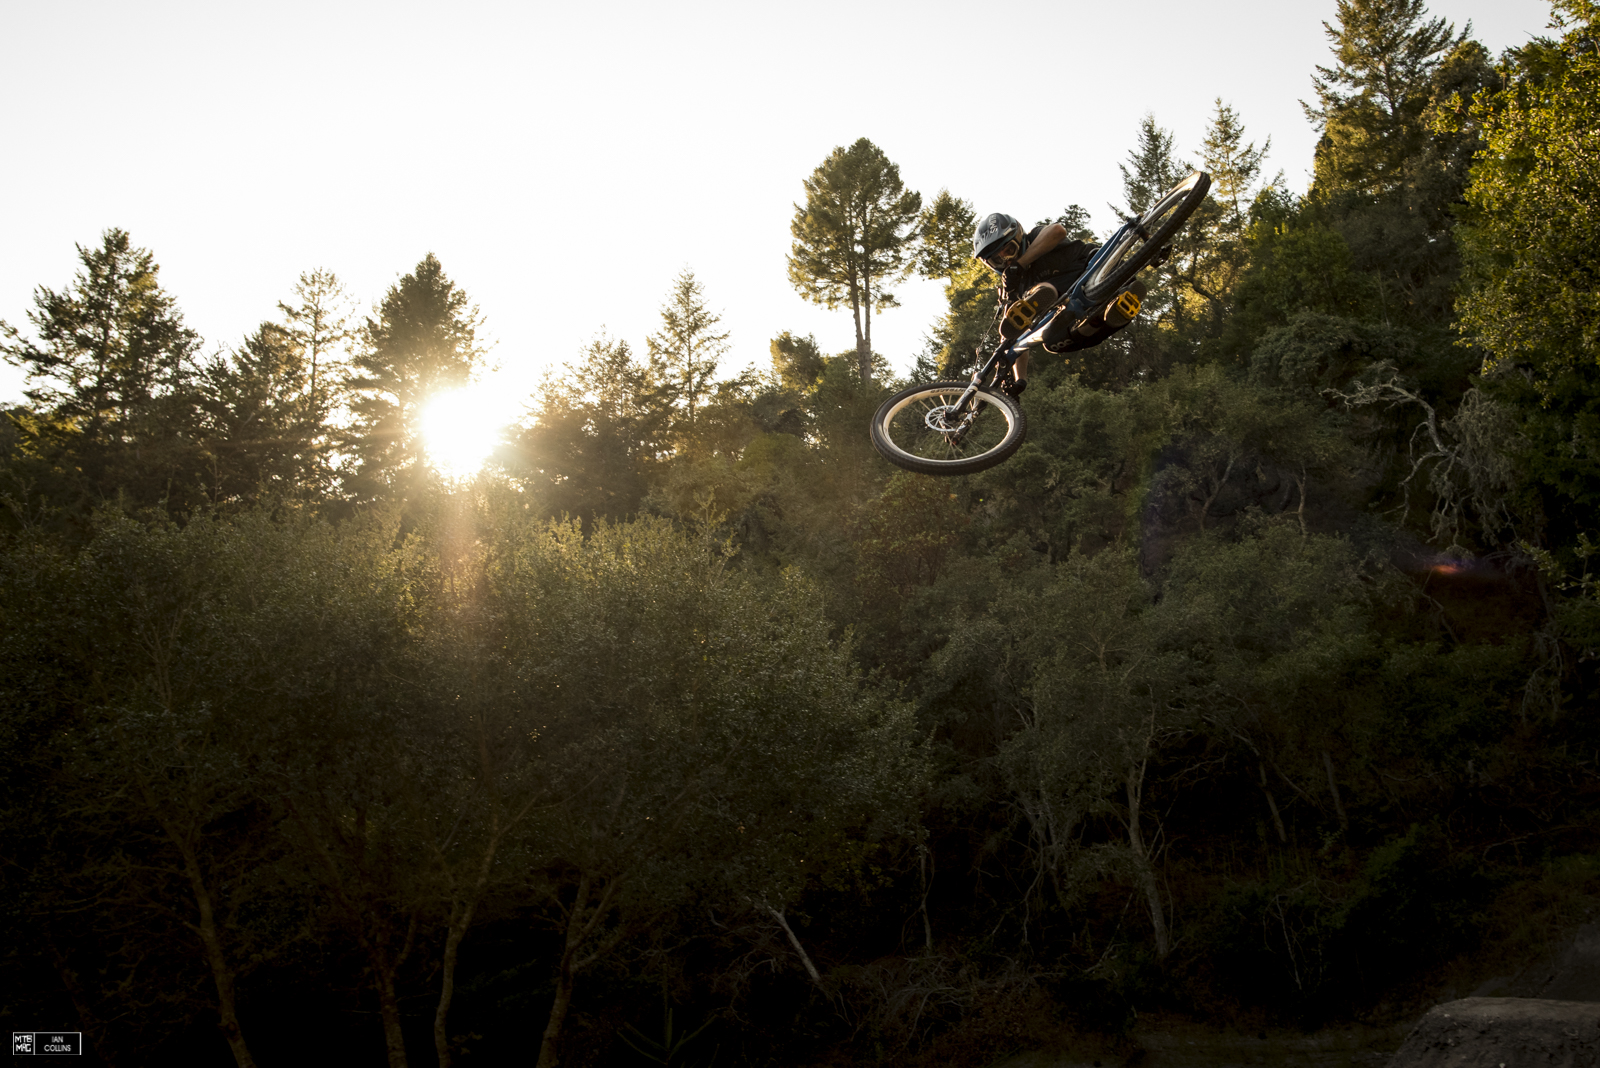 R-Dog whipping into golden hour. It should actually be called golden 10 minutes from a photographers standpoint.